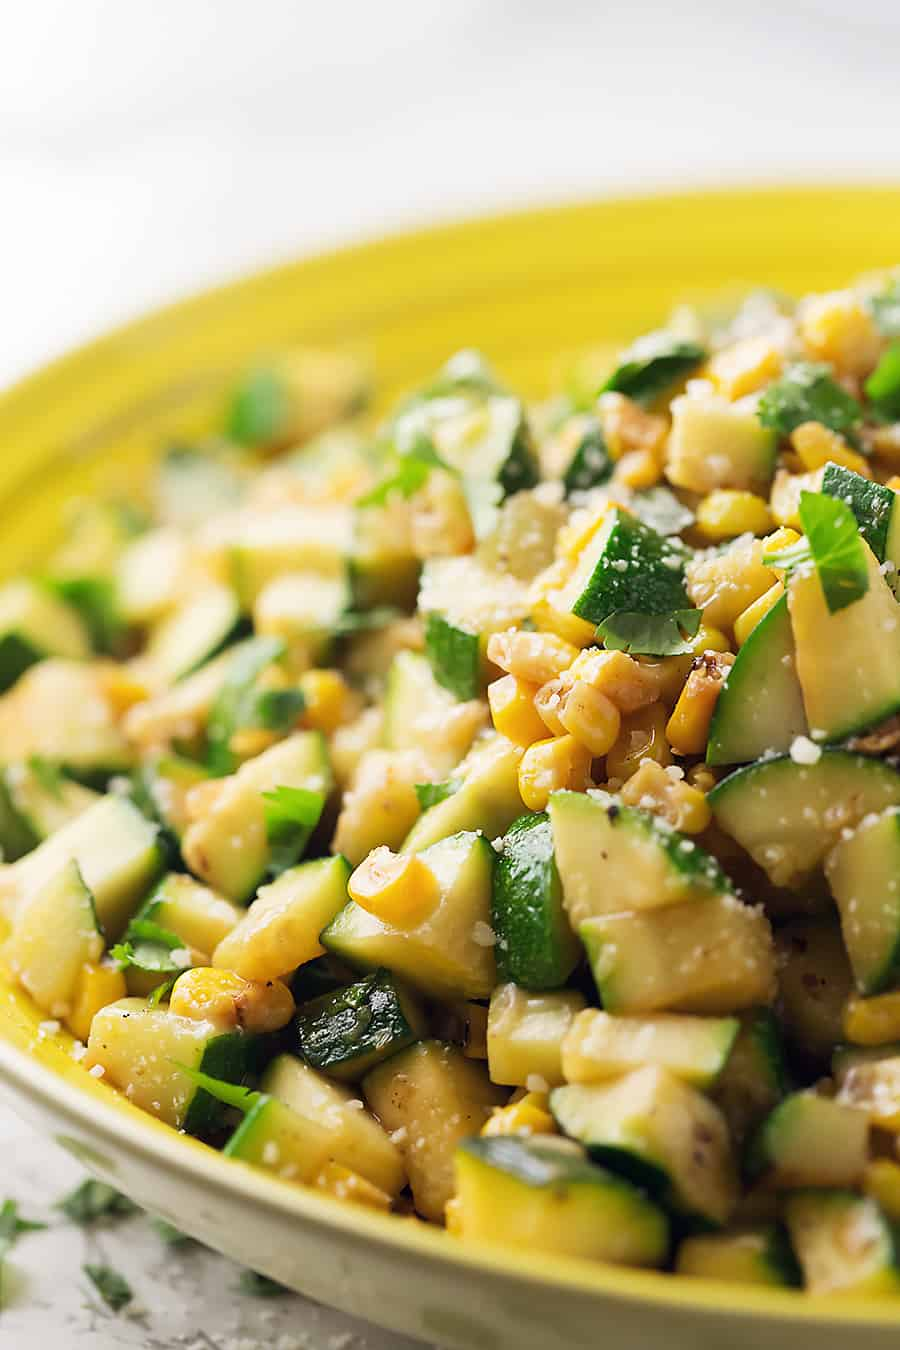 parmesan zucchini and corn diced, cooked and in a yellow serving bowl